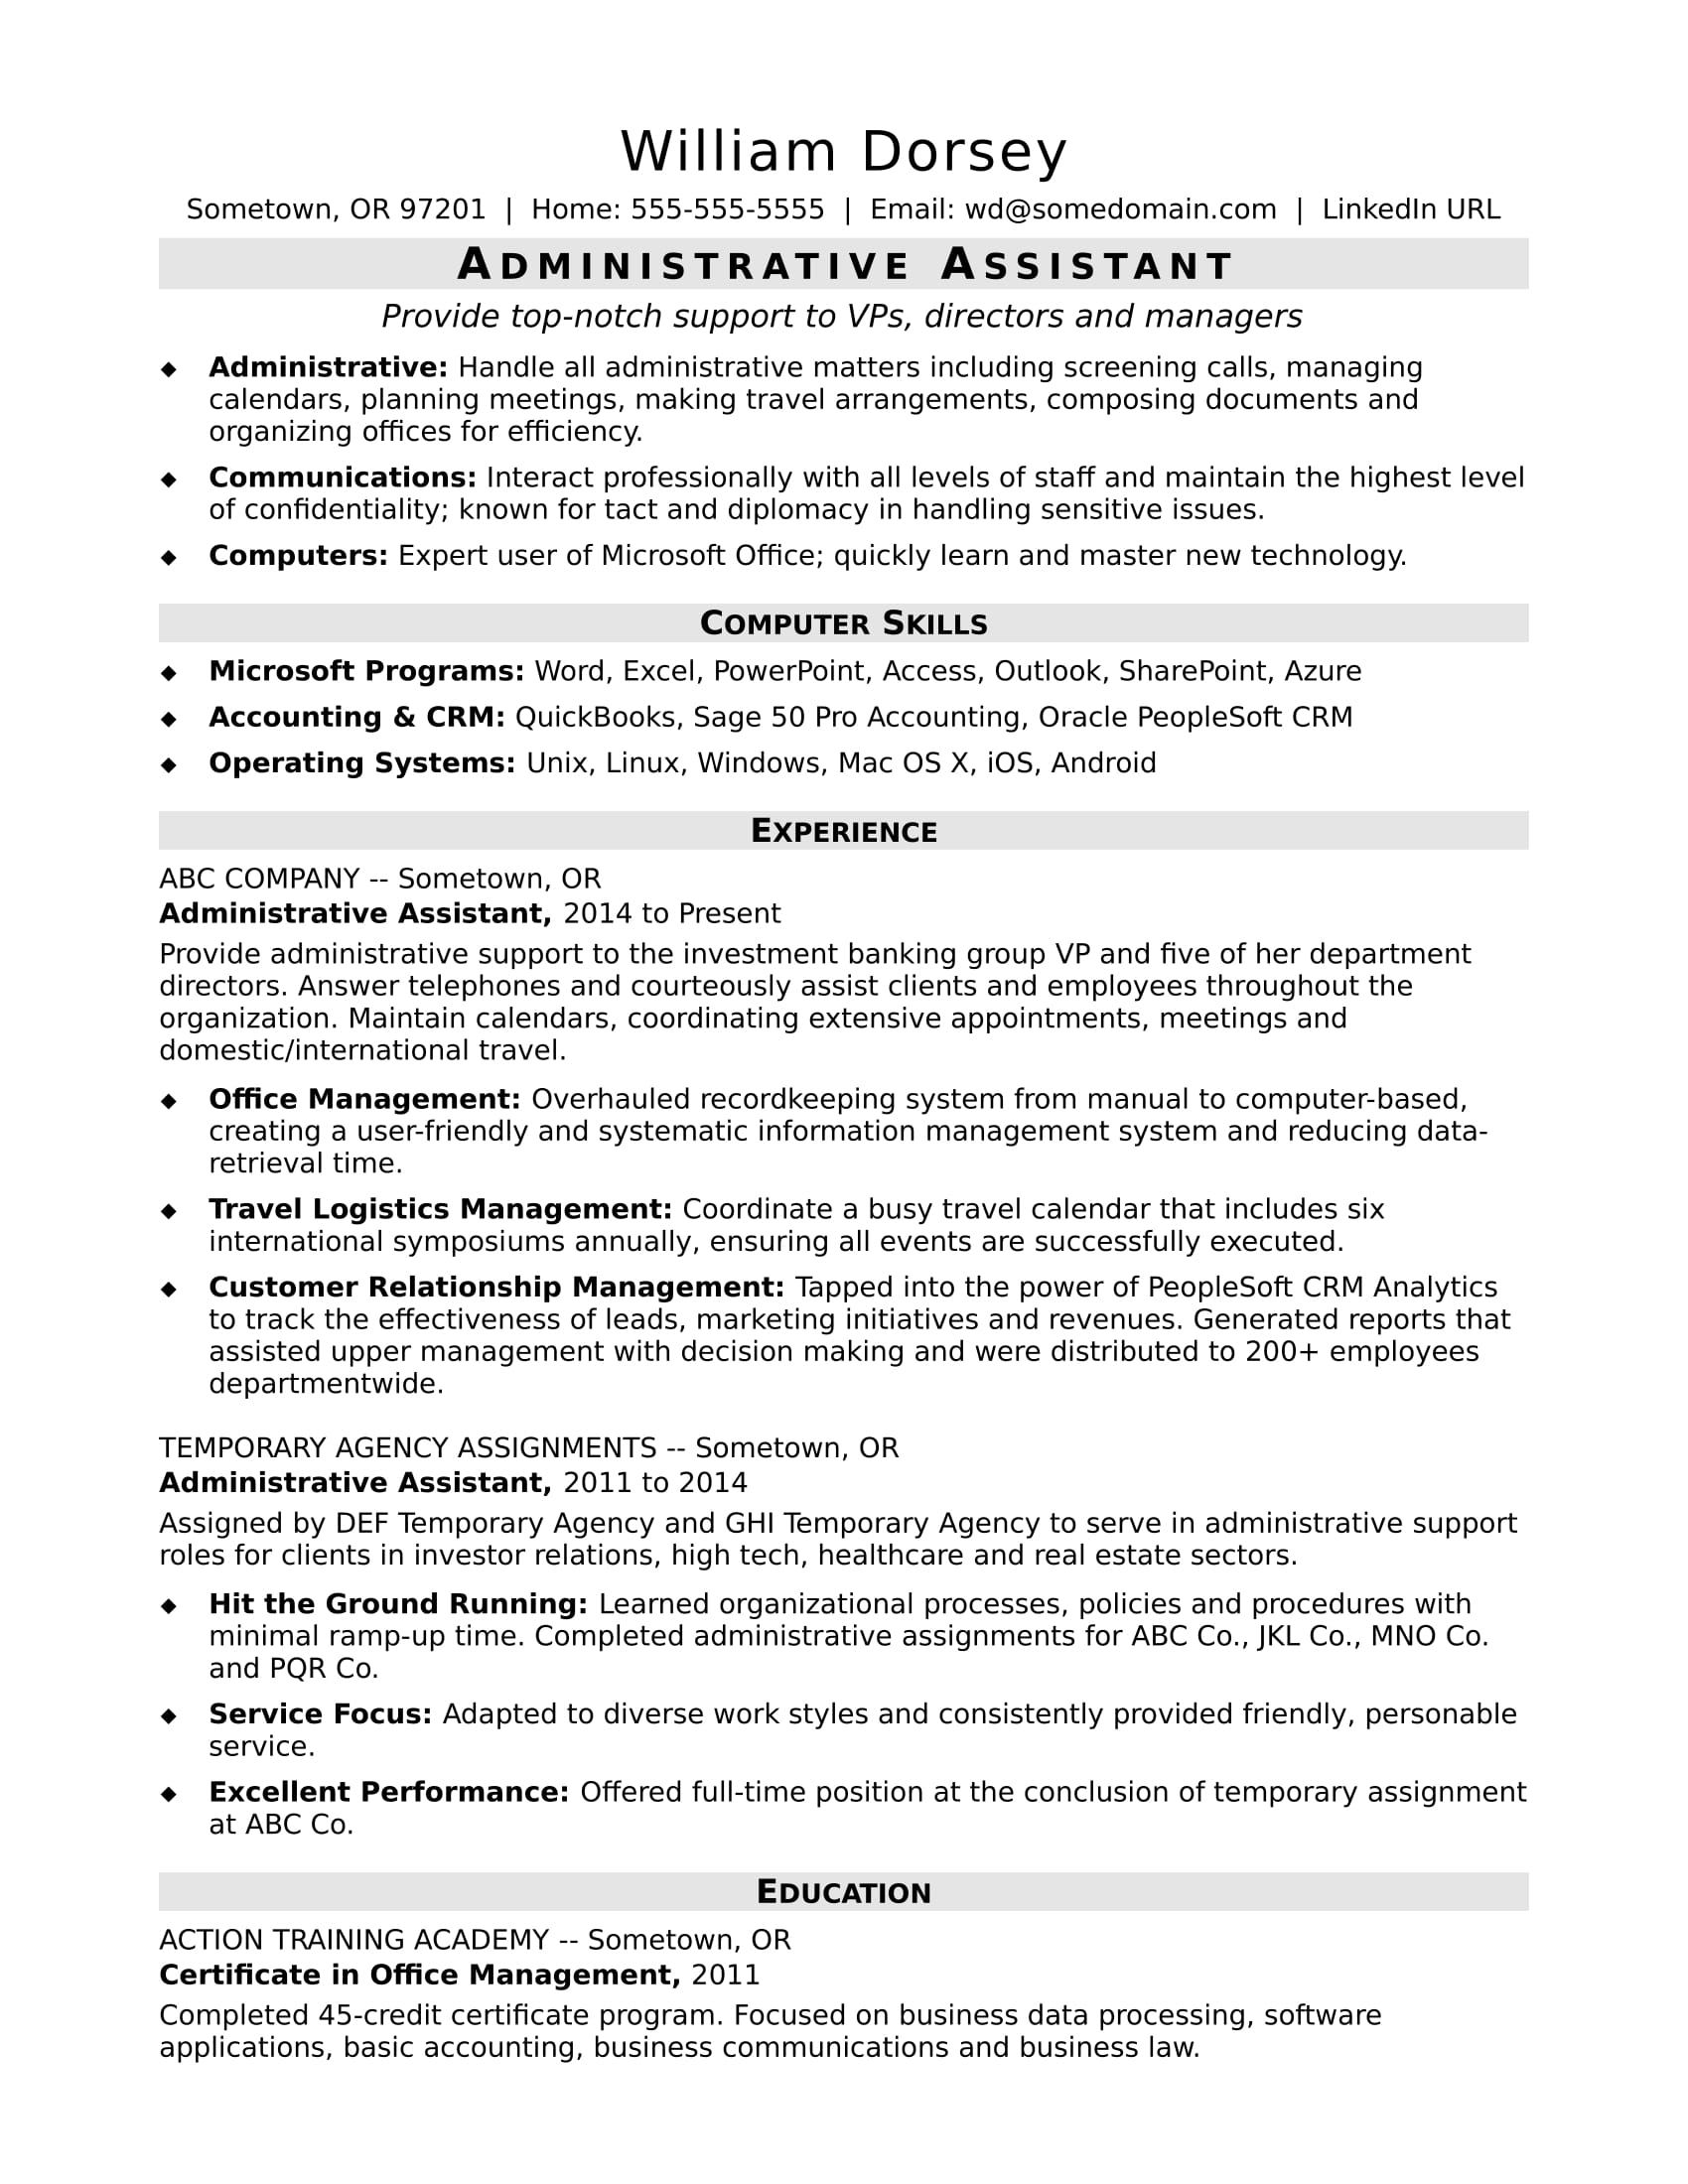 This Sample Resume For A Midlevel Administrative Assistant Shows How You Can Emphasize Your Office Skills And Proven Success In Administrative Roles Administrative Assistant Administrative Assistant Resume Office Assistant Resume